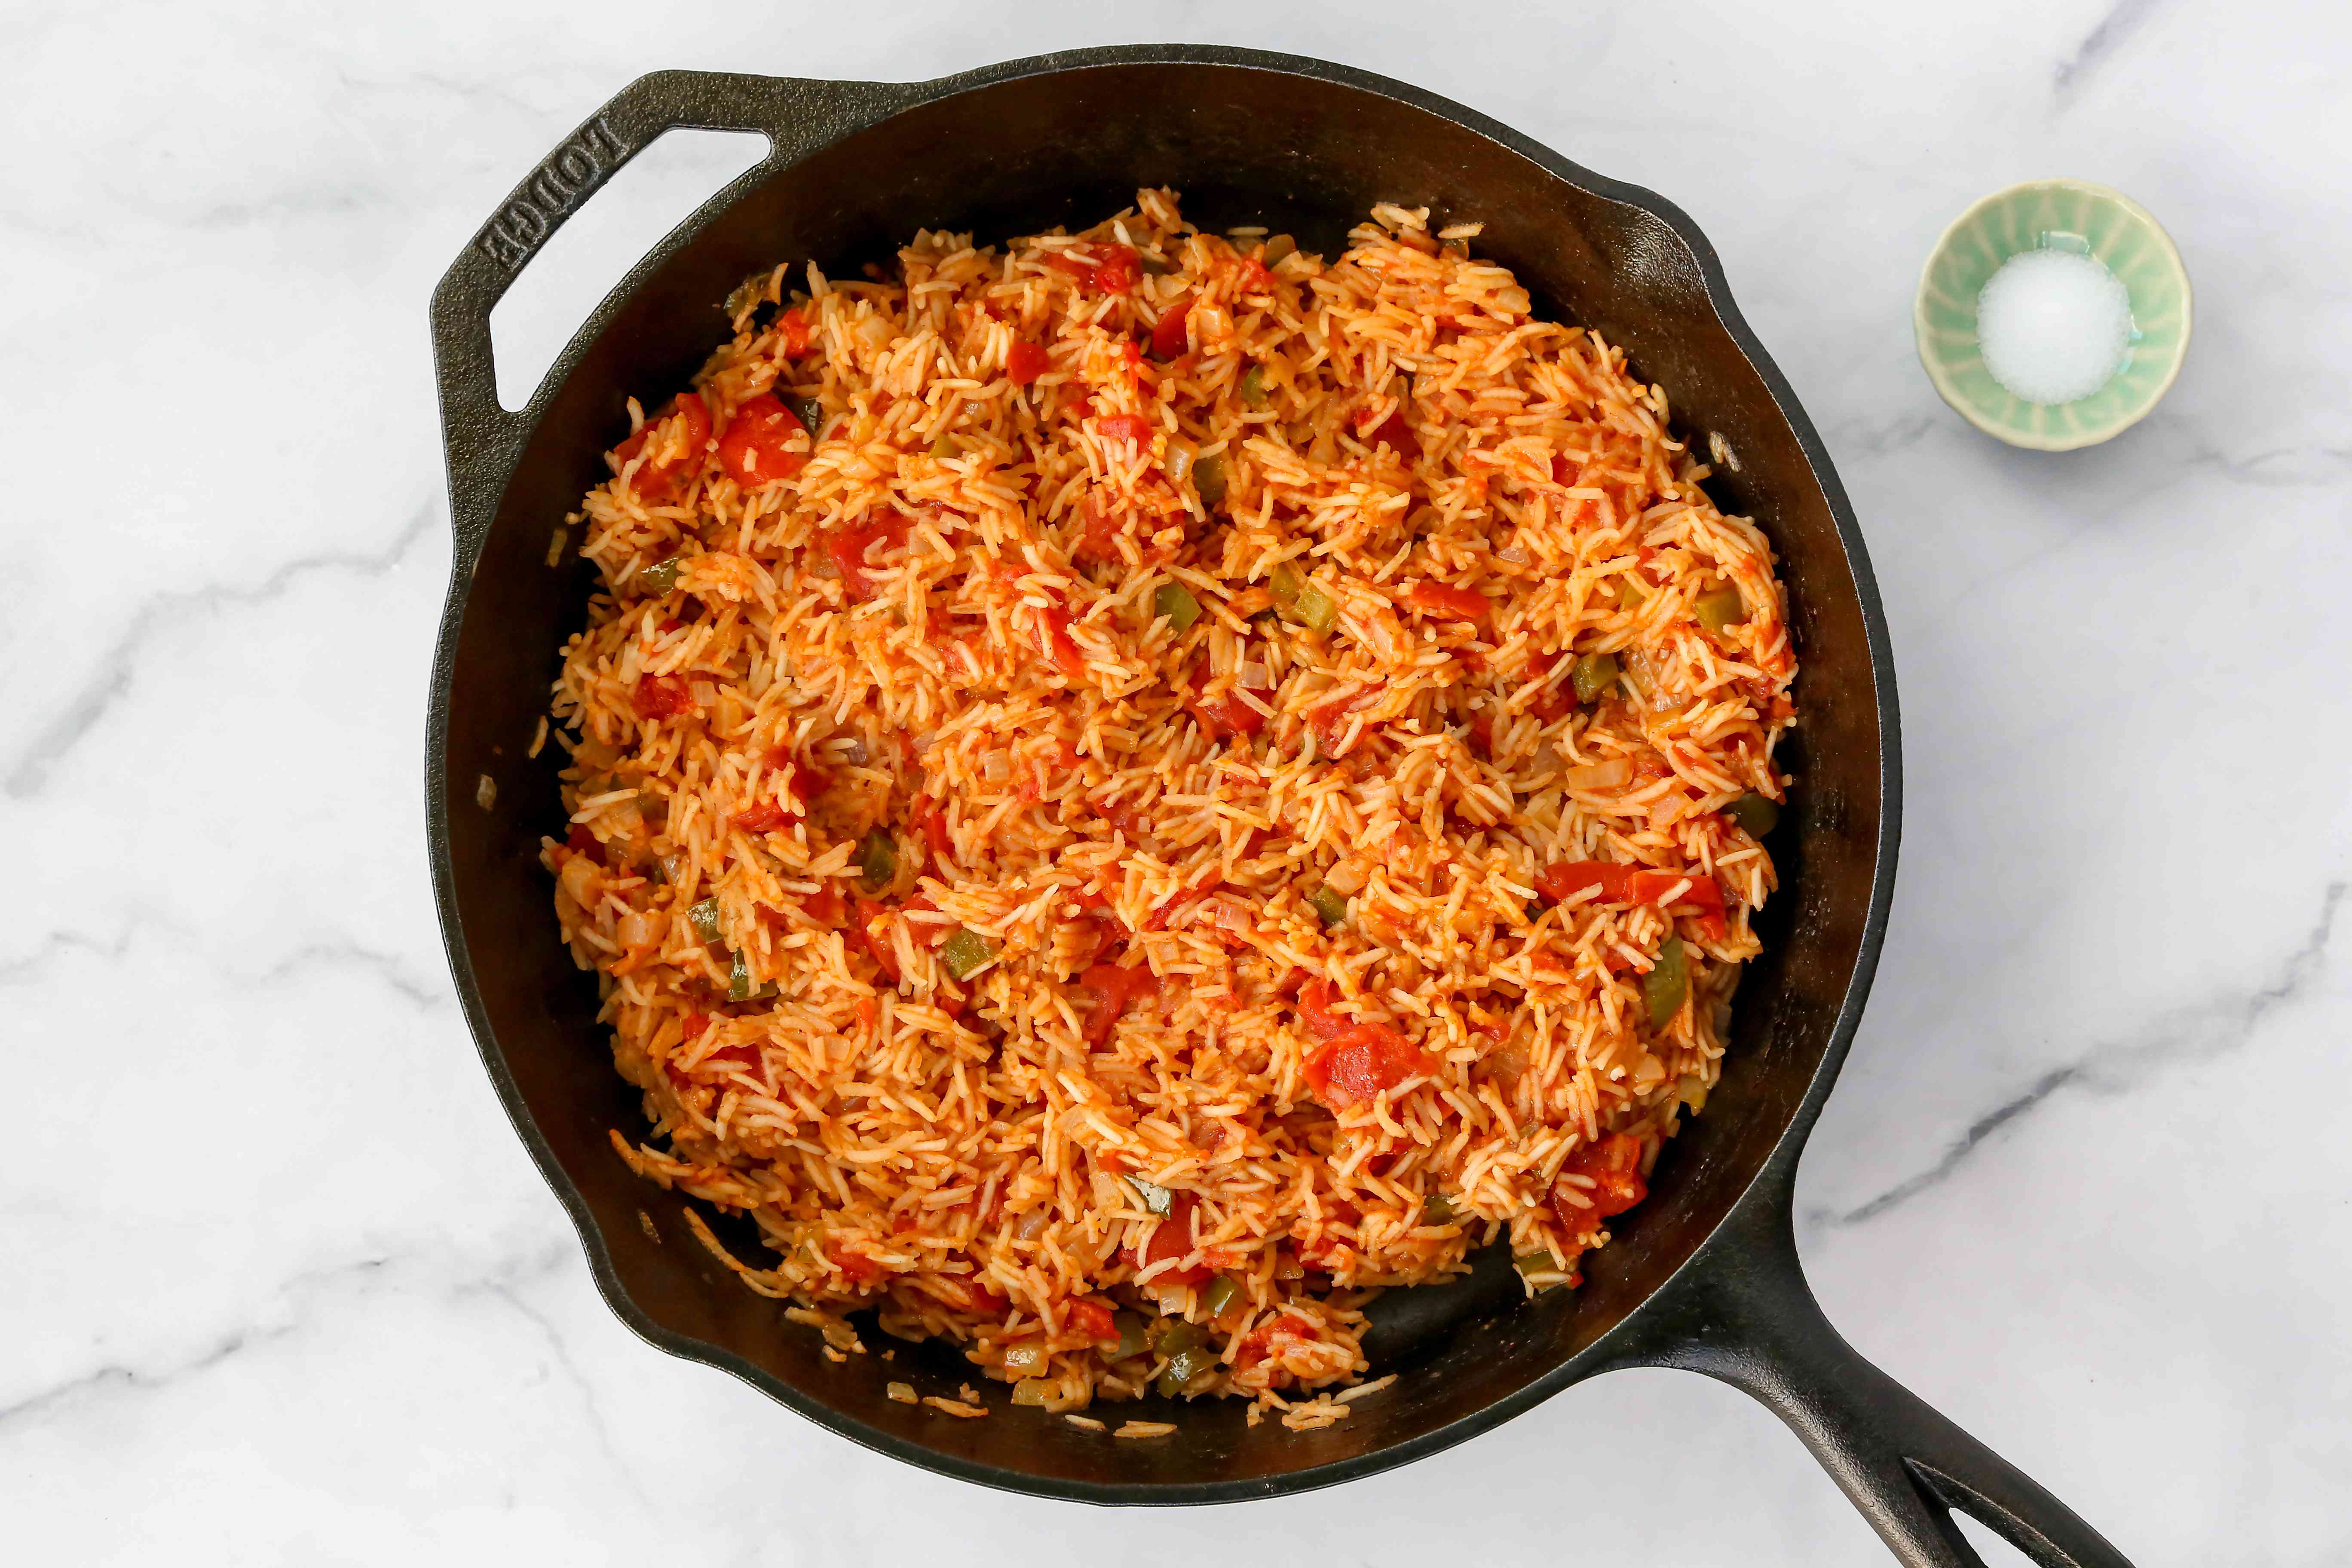 Mexican rice cooking in a cast iron skillet